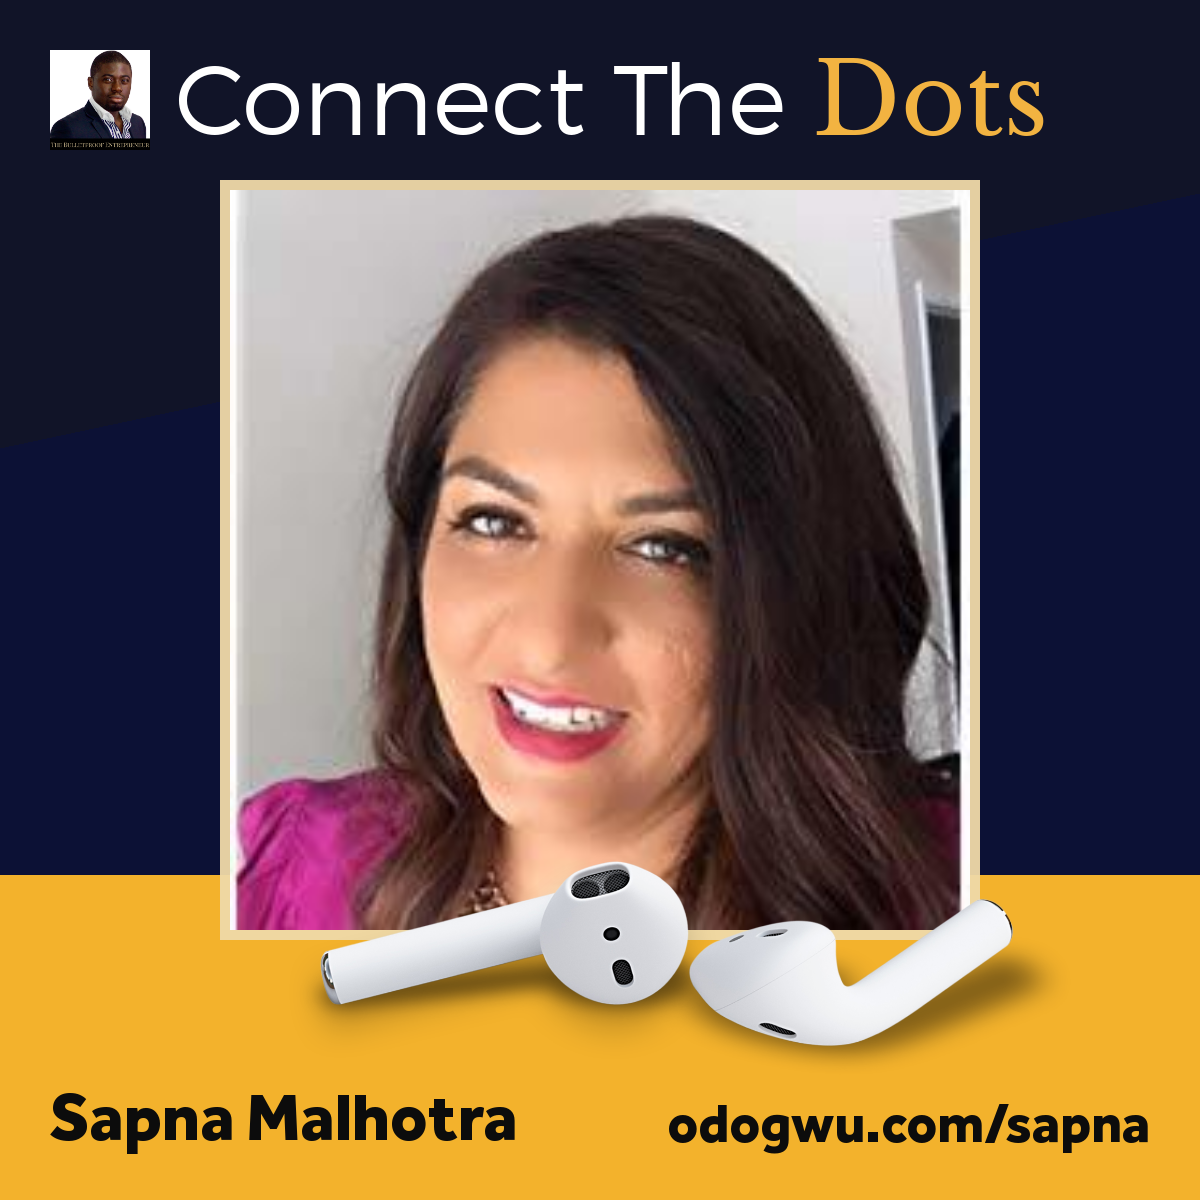 Sapna Malhotra Teaches You How to Network Your Way to Success